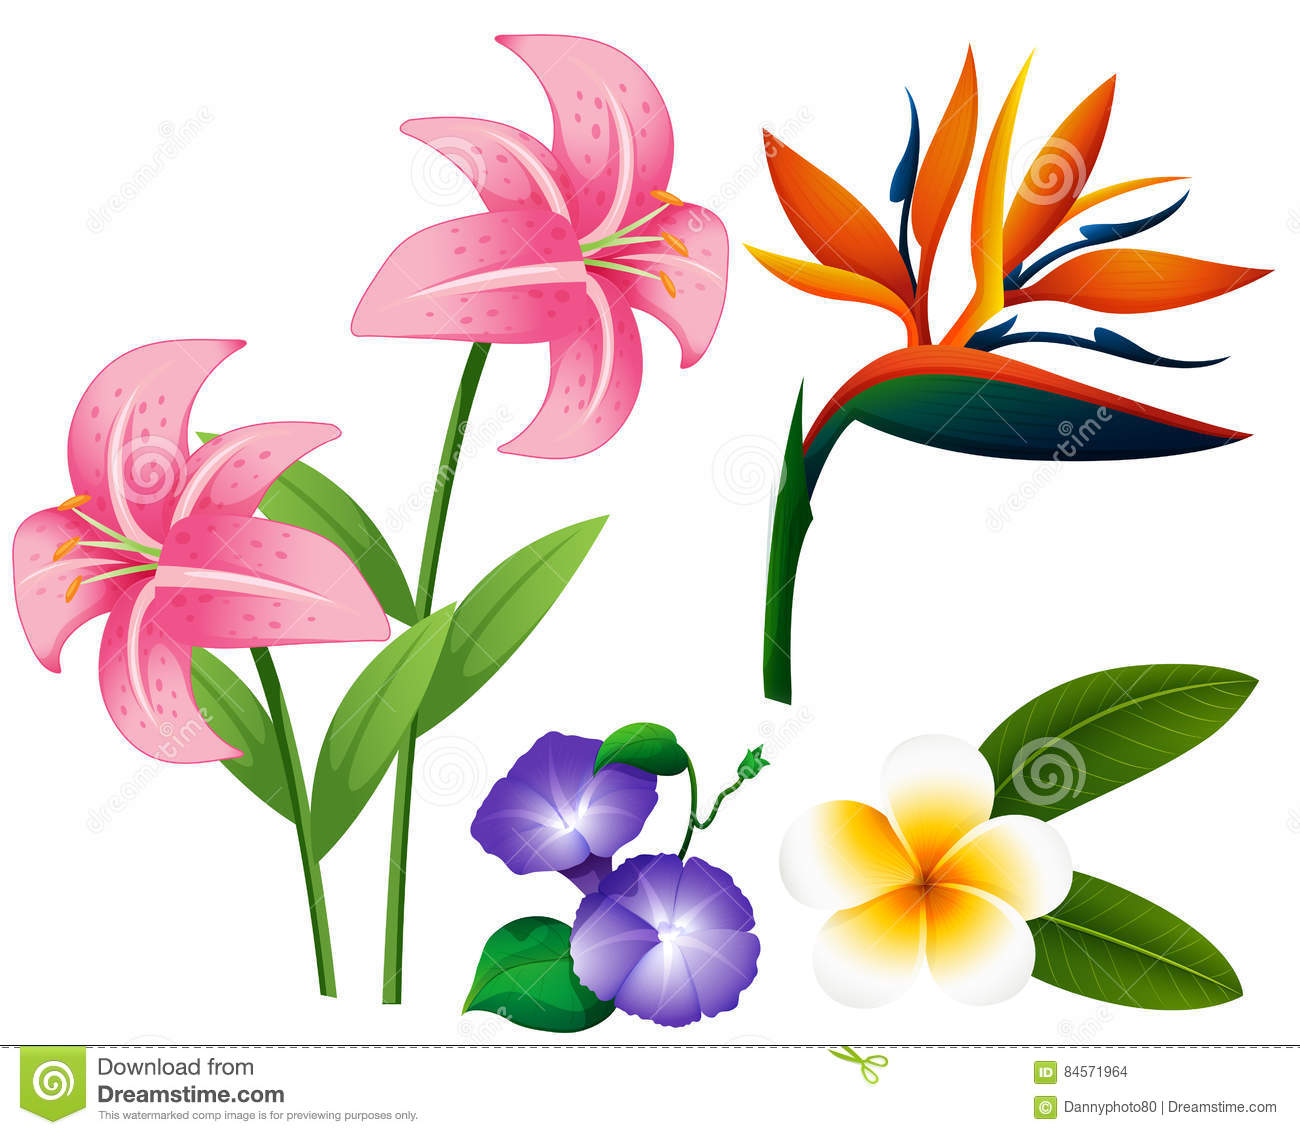 Different types of flowers stock vector Image of illustration